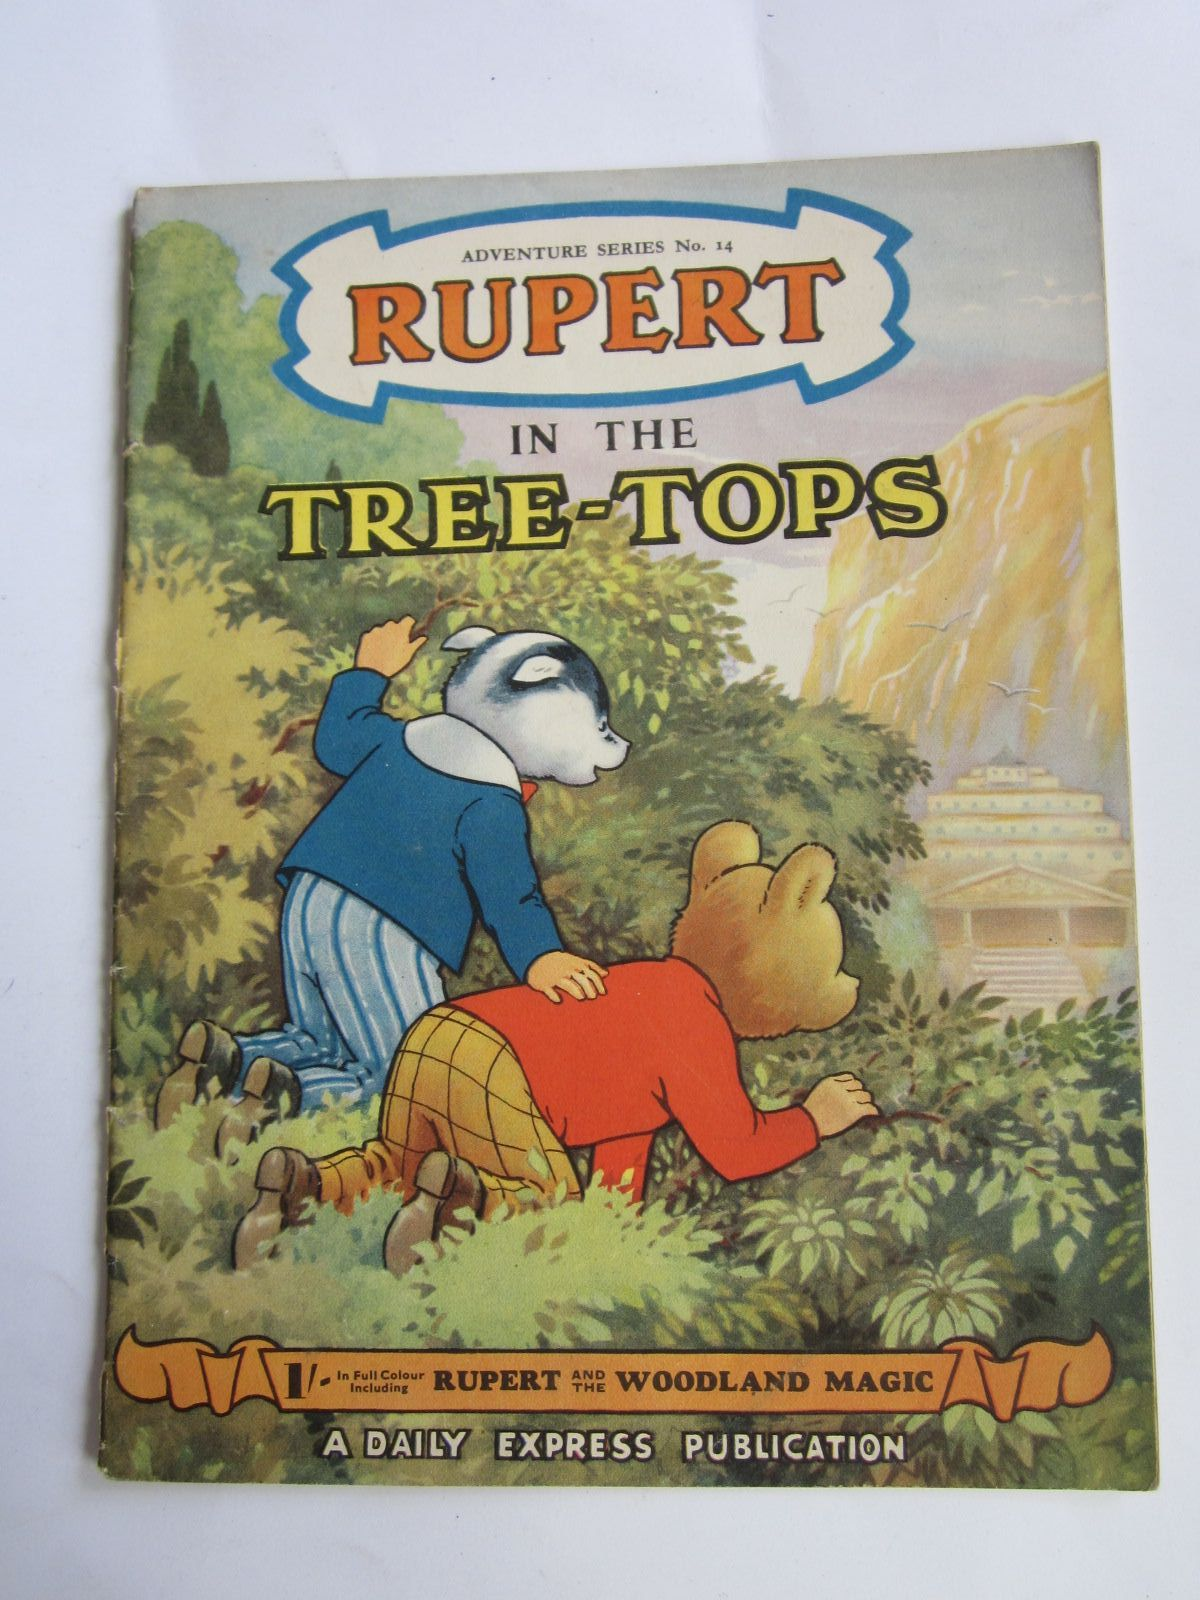 Photo of RUPERT ADVENTURE SERIES No. 14 - RUPERT IN THE TREE TOPS written by Bestall, Alfred illustrated by Bestall, Alfred Cubie, Alex published by Daily Express (STOCK CODE: 1309060)  for sale by Stella & Rose's Books